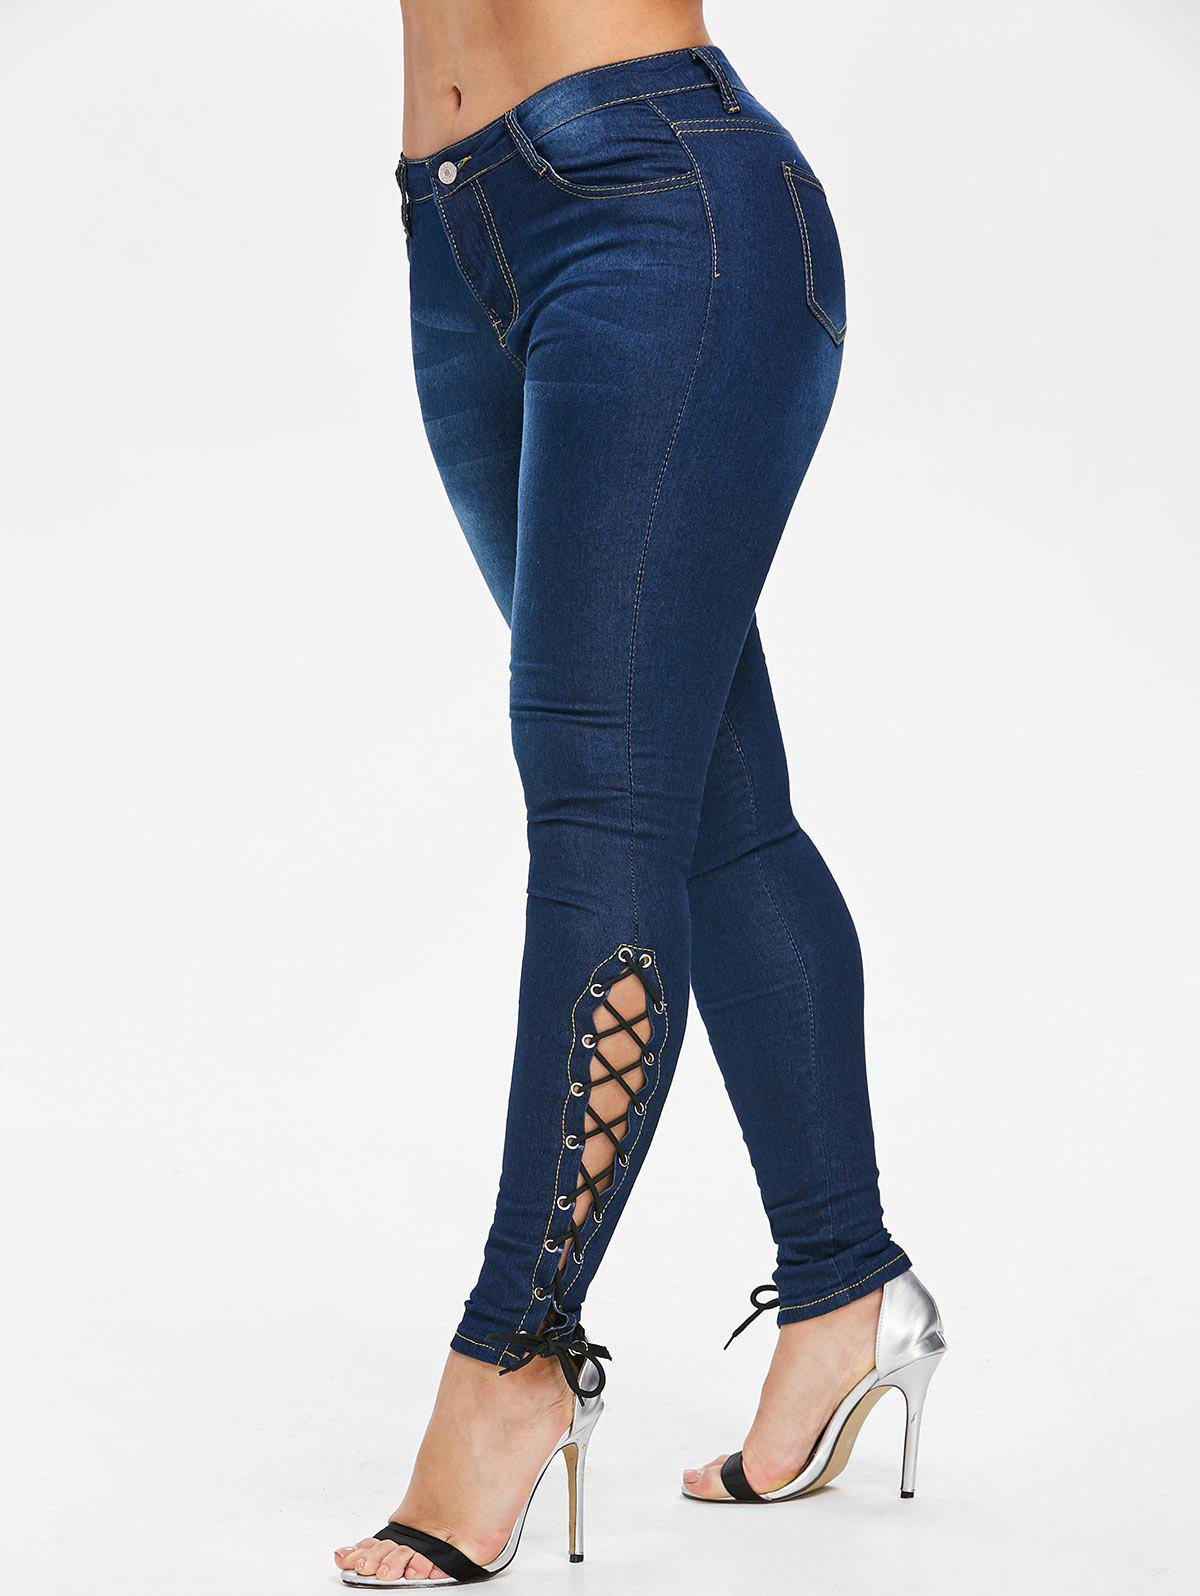 Buy Side Lace Up High Waisted Jeans